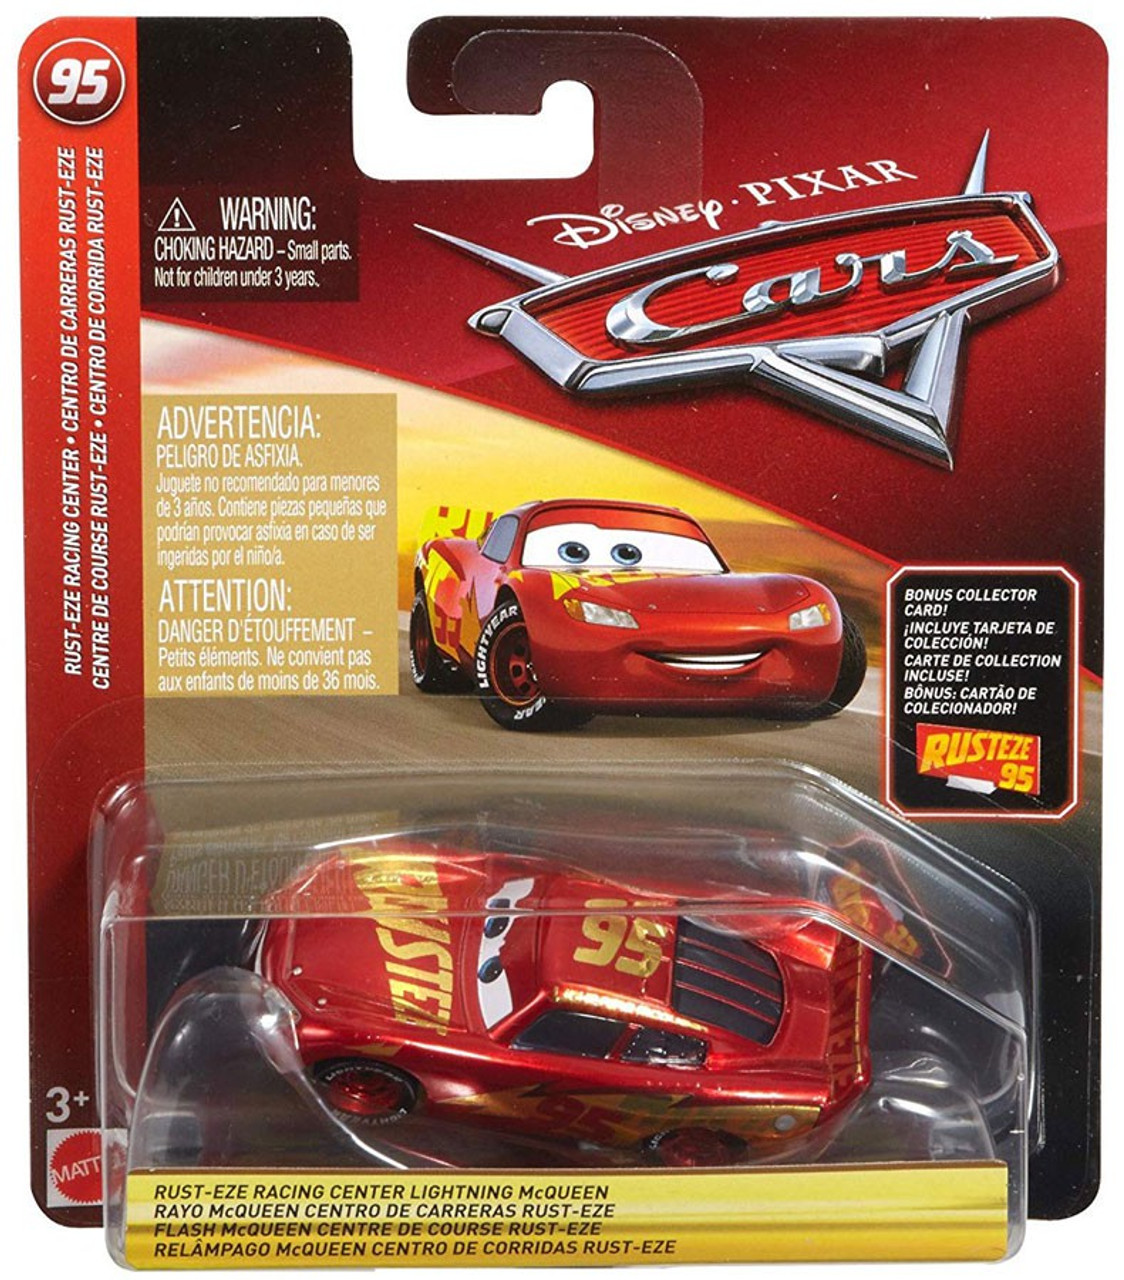 Disney Pixar Cars Cars 3 Rust Eze Racing Center Lightning Mcqueen